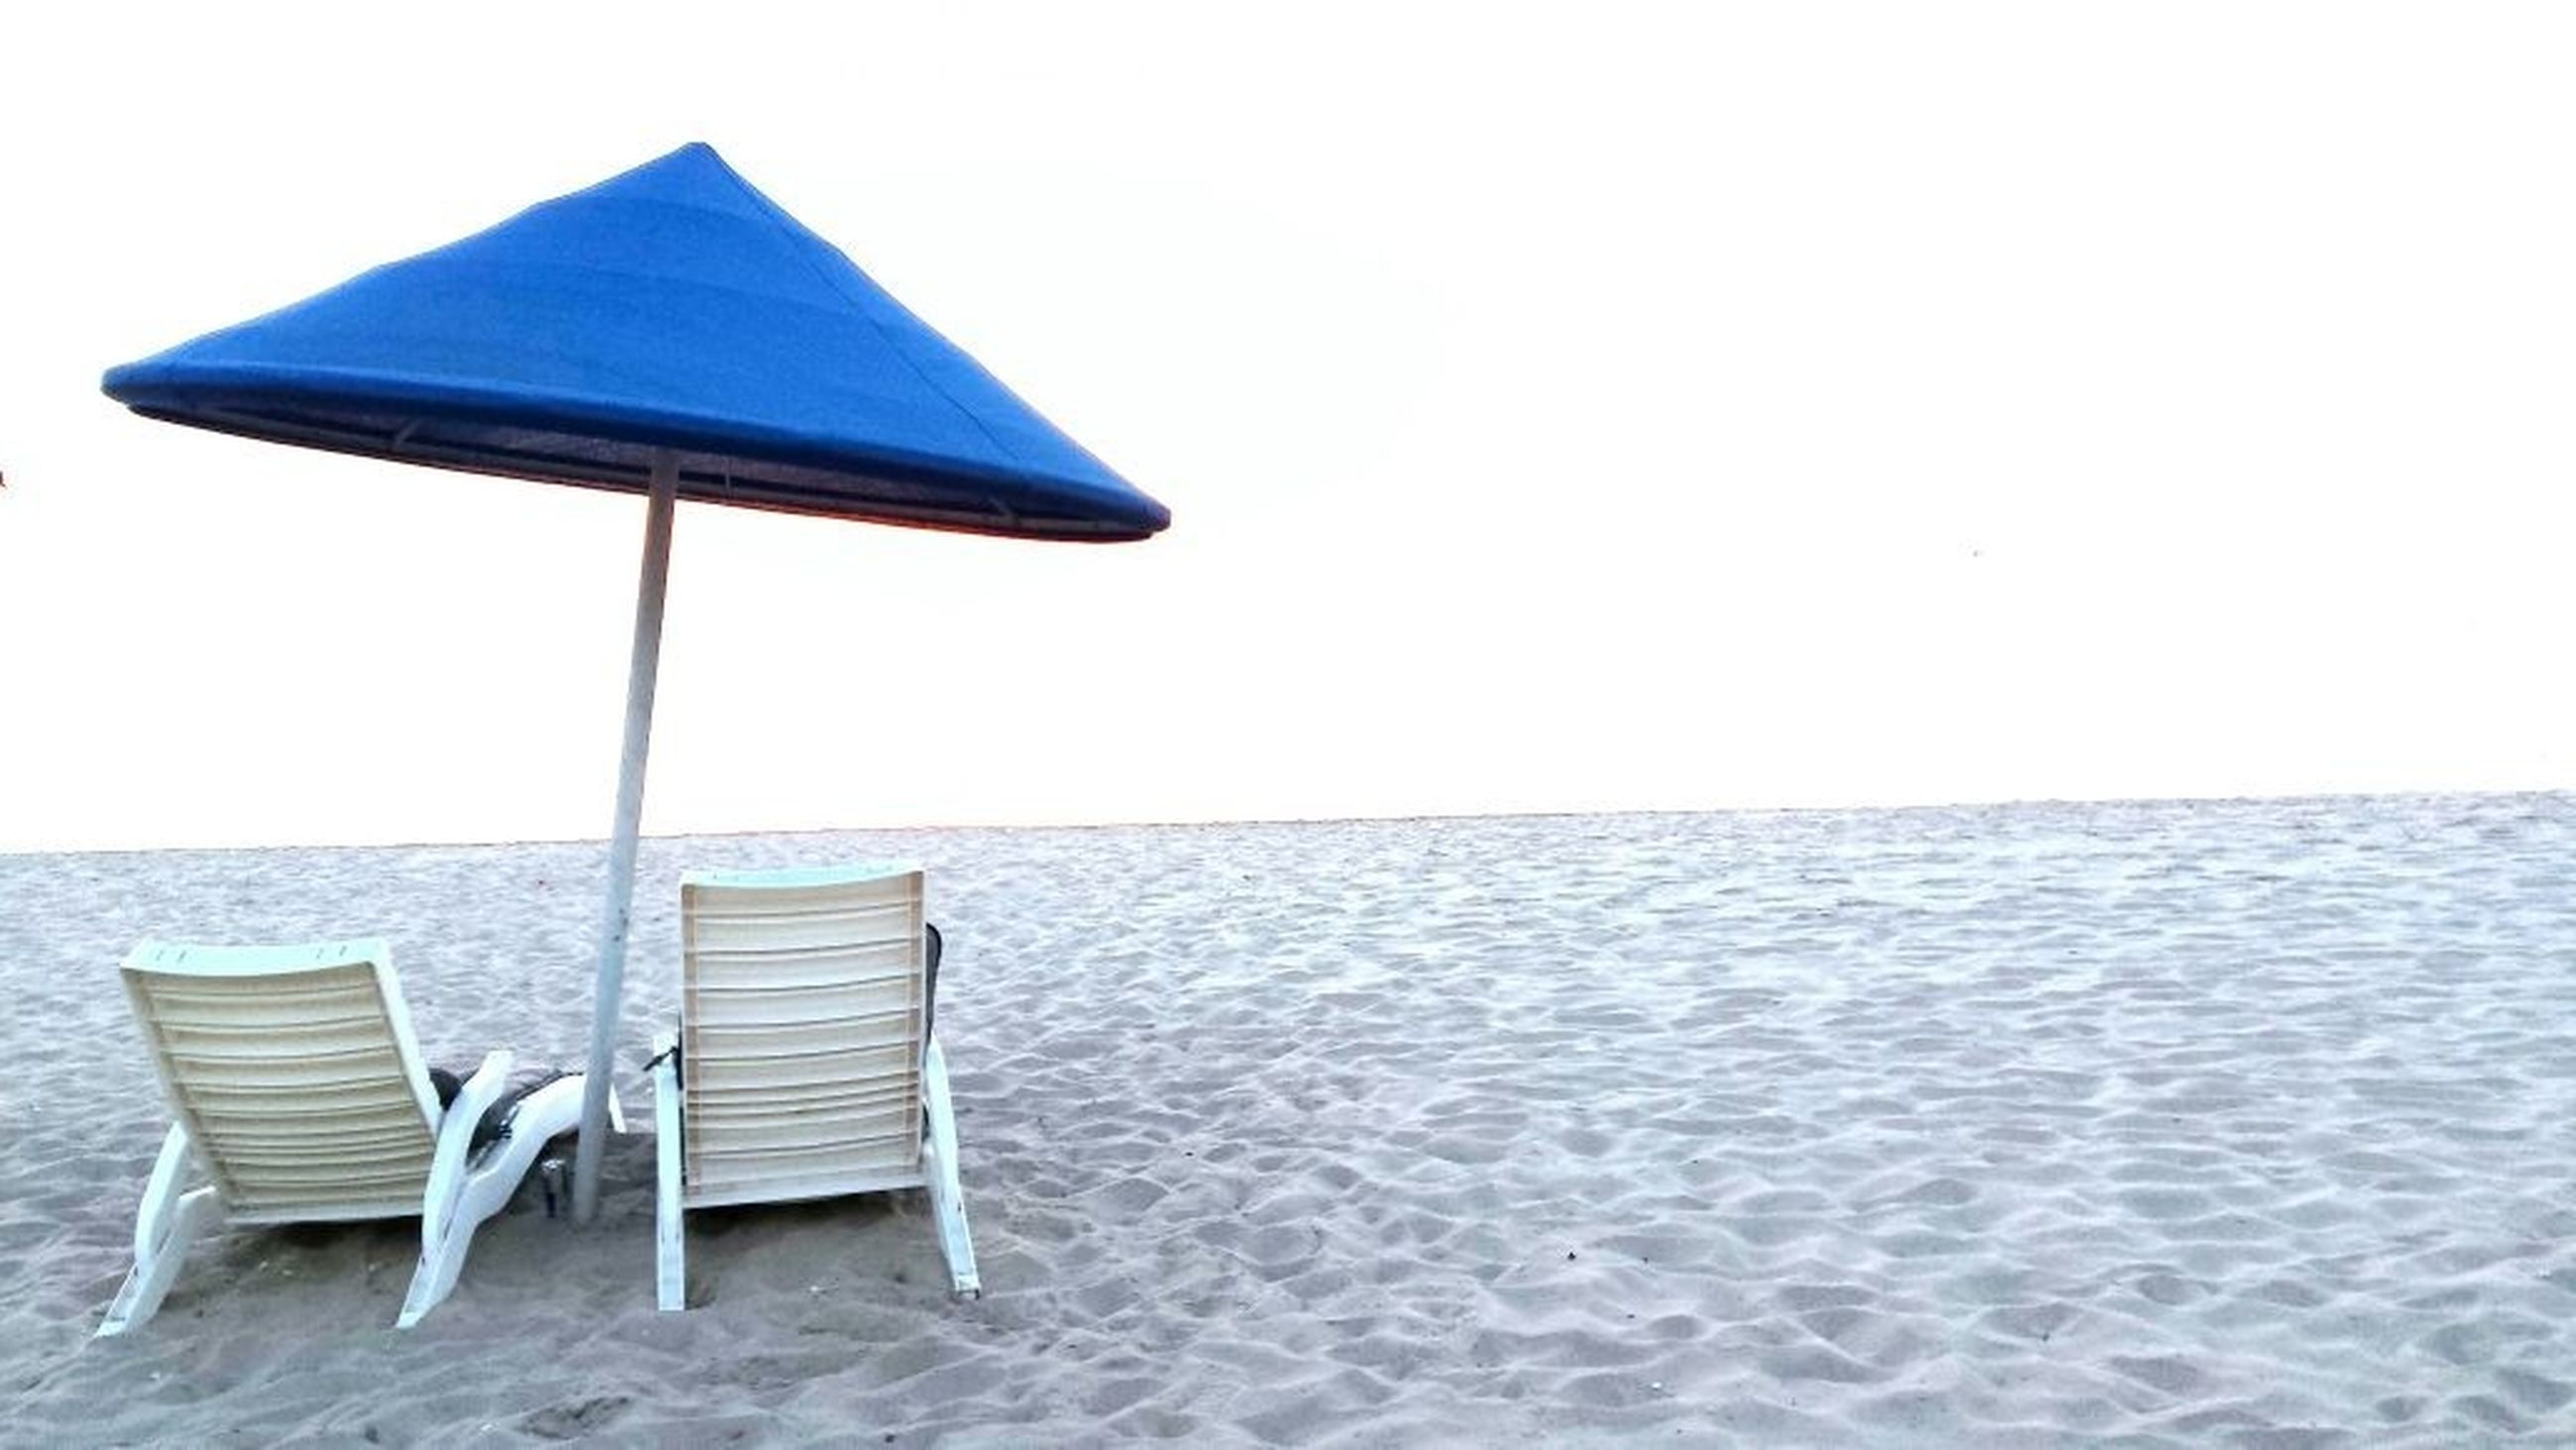 absence, empty, sea, chair, copy space, water, clear sky, horizon over water, tranquil scene, tranquility, beach, table, seat, wood - material, nature, bench, day, scenics, no people, parasol